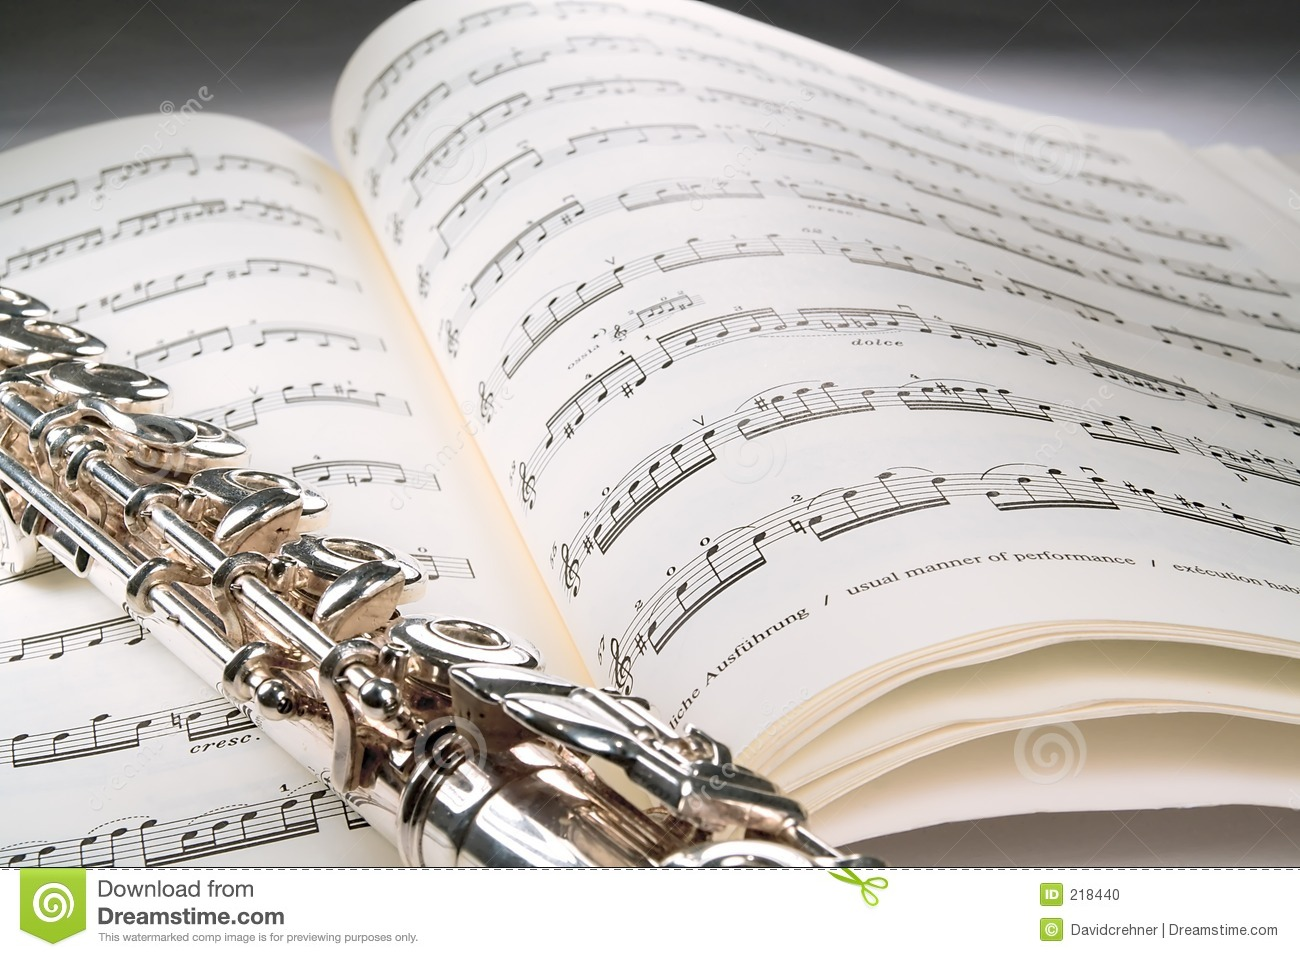 Cute Wallpapers Drawing Flute On An Open Musical Score With Gray Background Stock